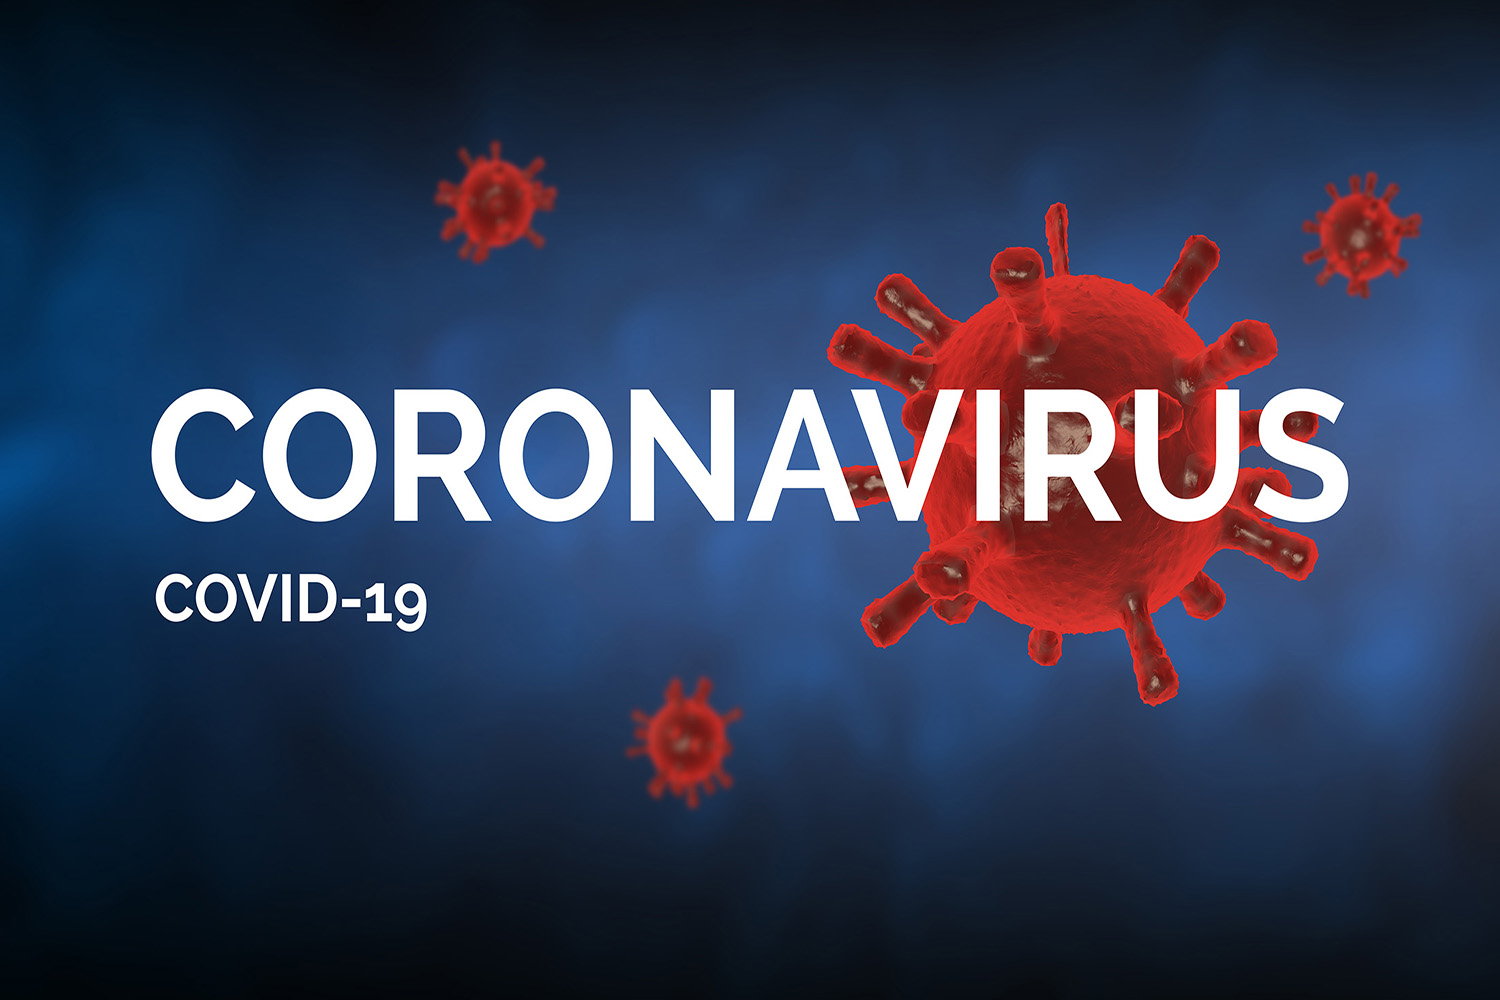 """Covid-19 concept image with """"Coronavirus covid-19"""" text against a blue background. Red viruses made with rendering 3D - computer generated image."""